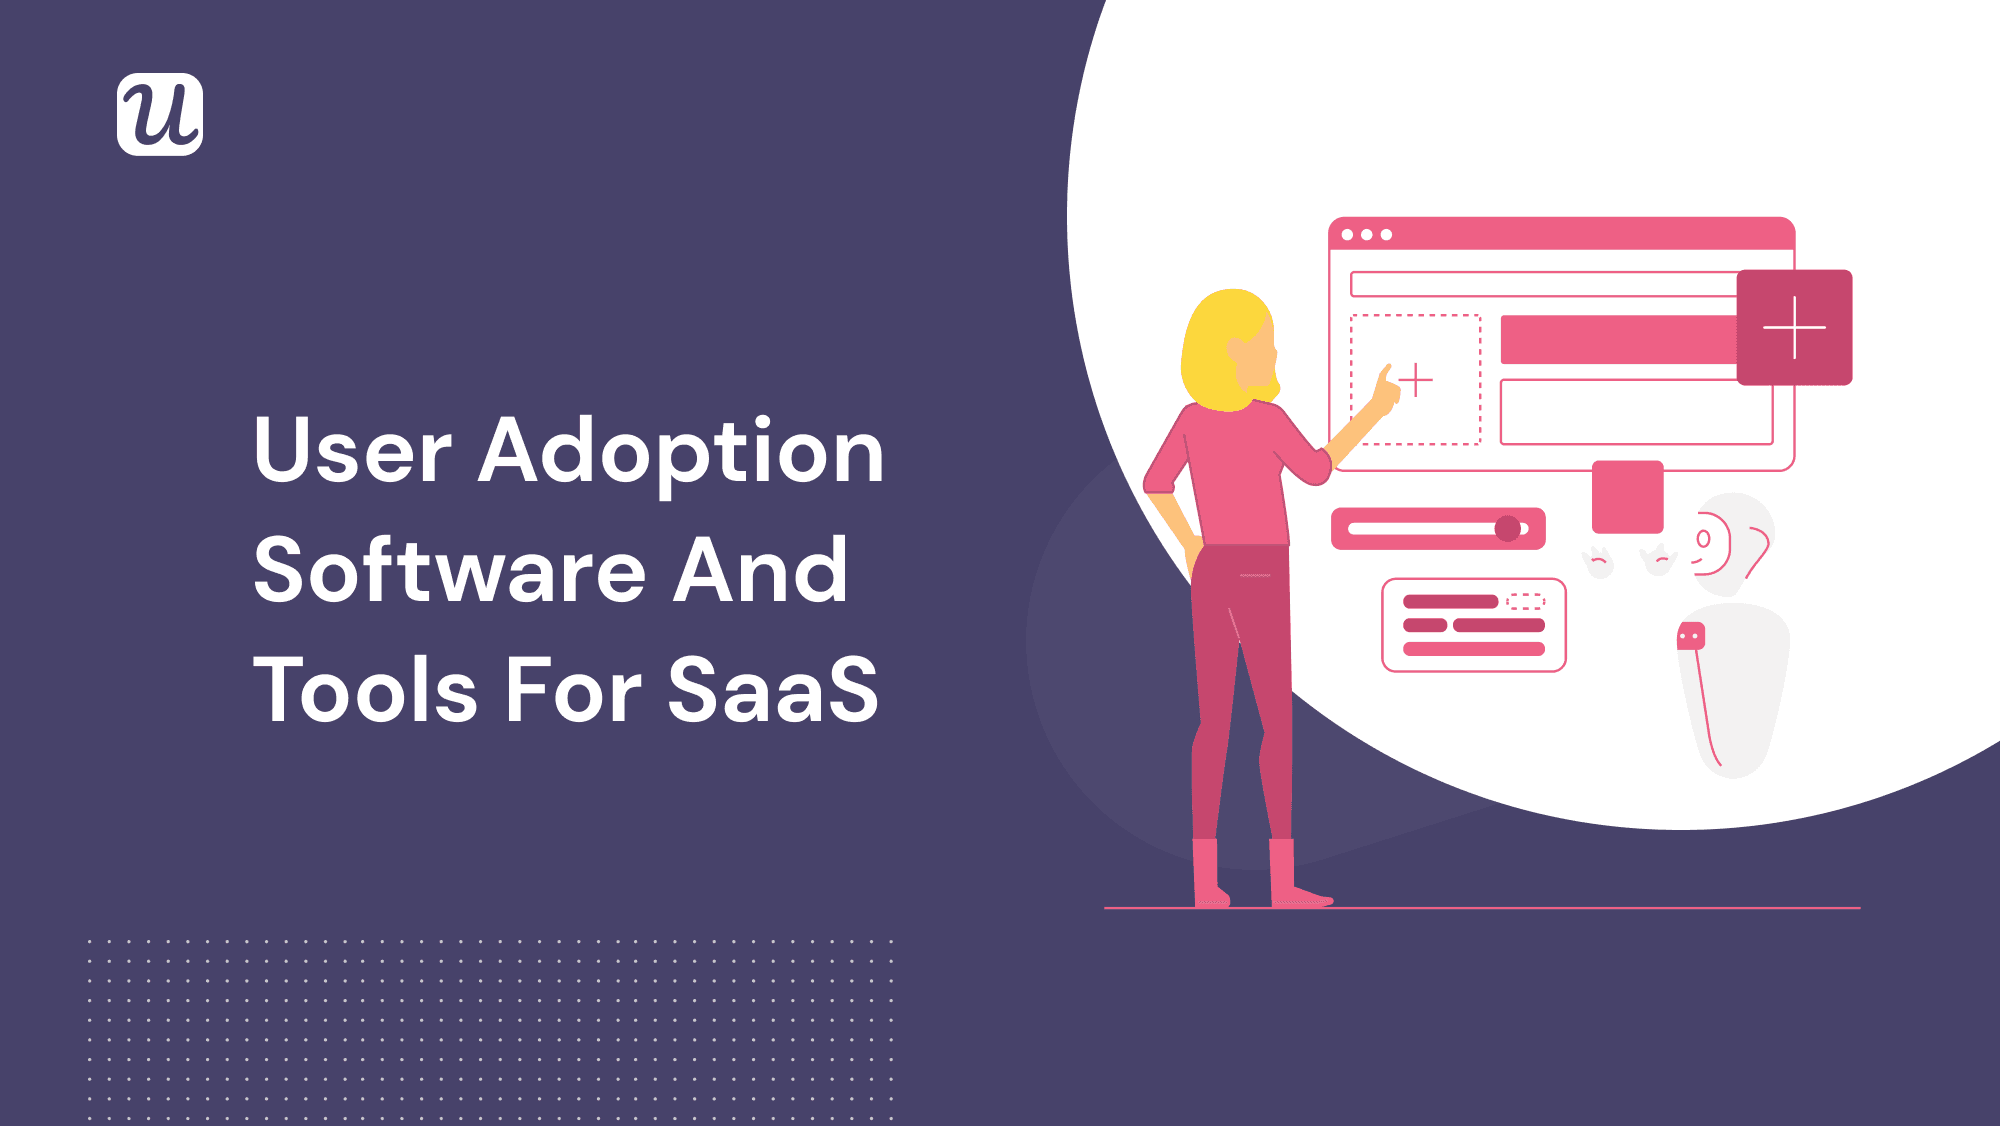 What are the Best User Adoption Software and Tools for SaaS?